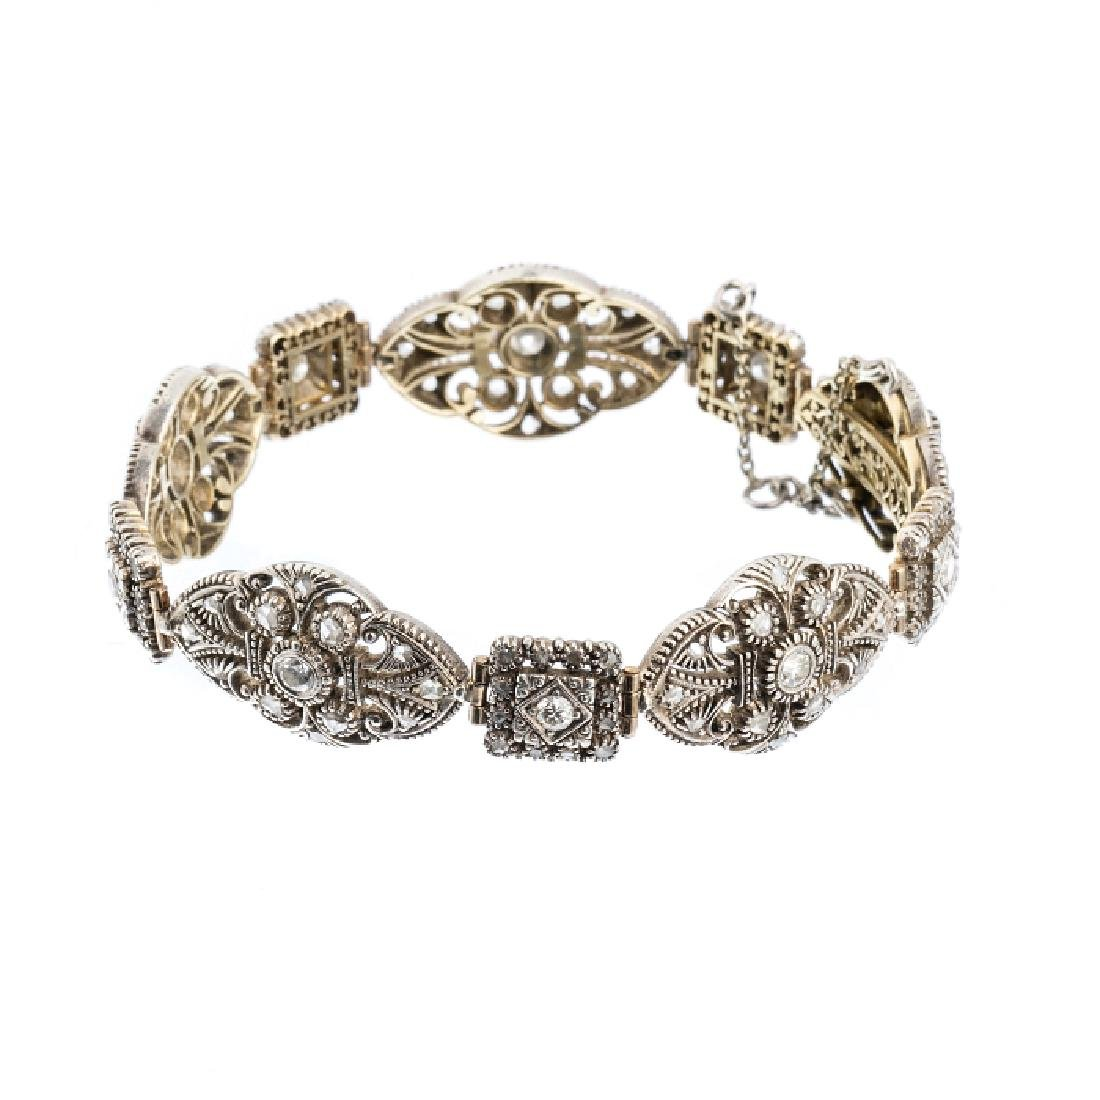 Gold, silver bracelet with diamonds